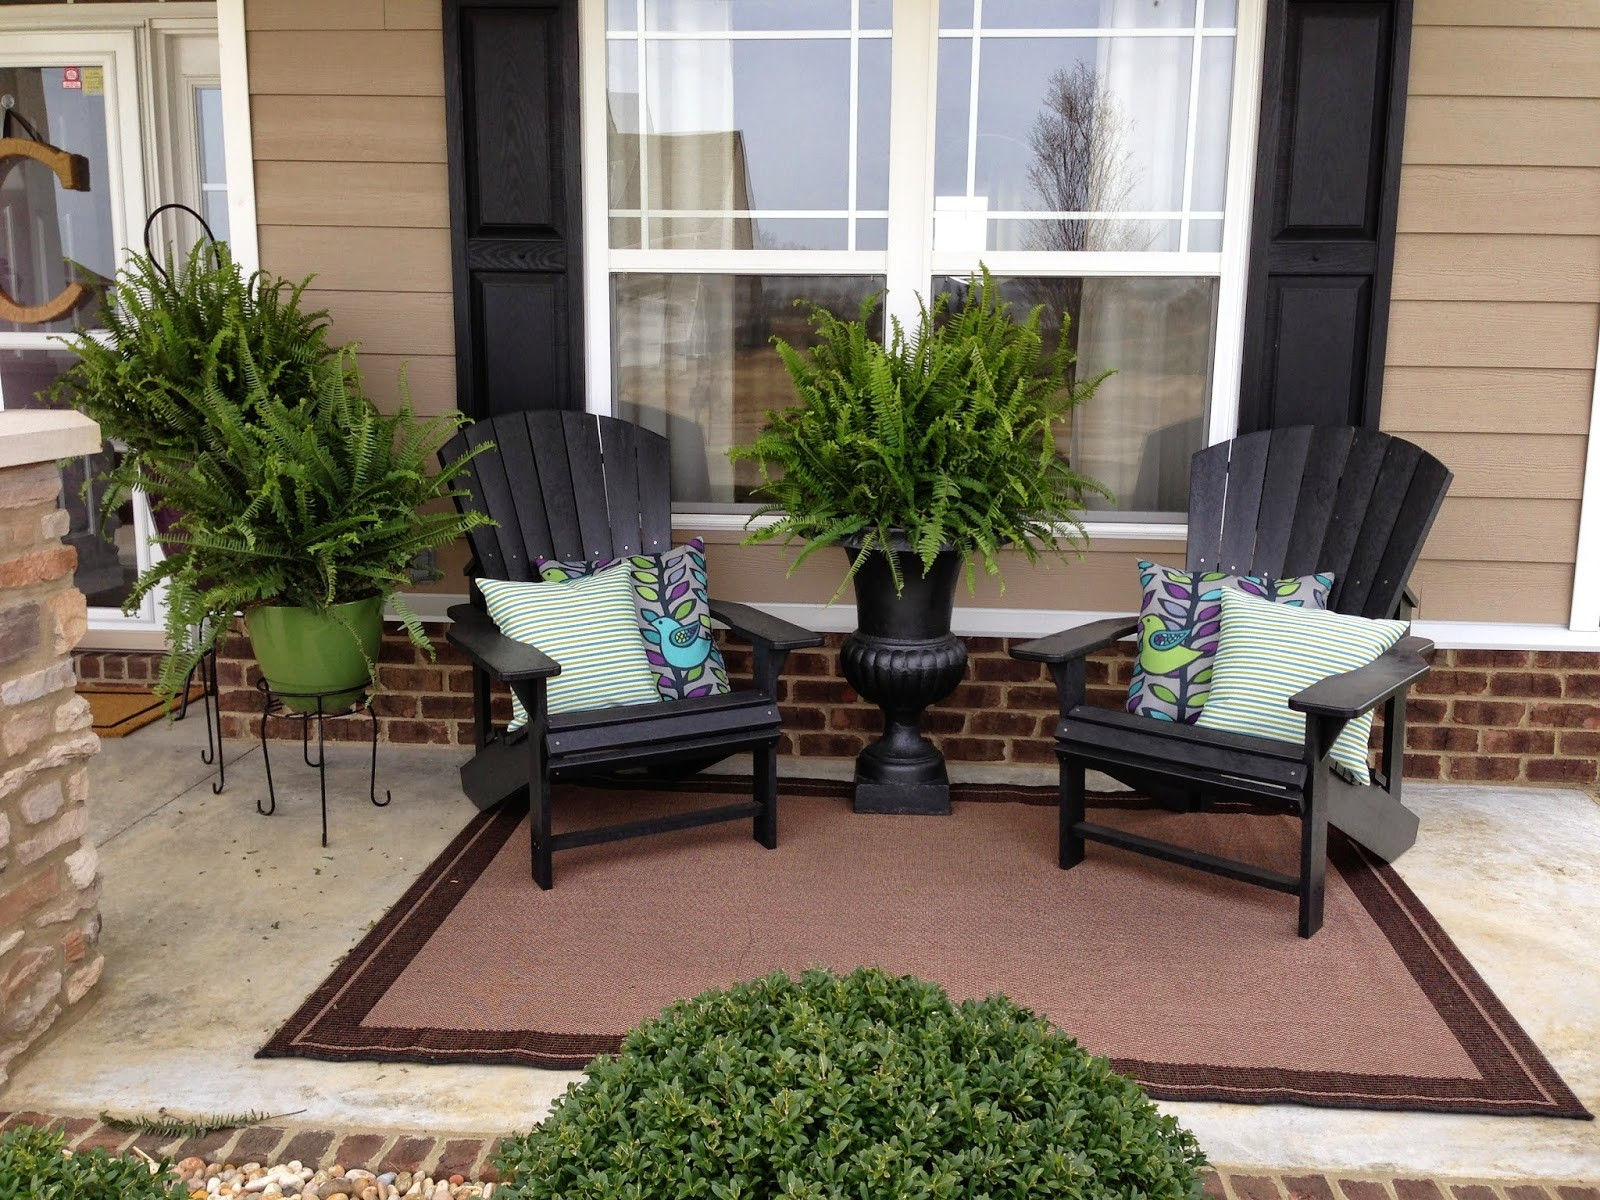 Best ideas about Small Front Porch Furniture Ideas . Save or Pin Small Front Porch Furniture Ideas Now.